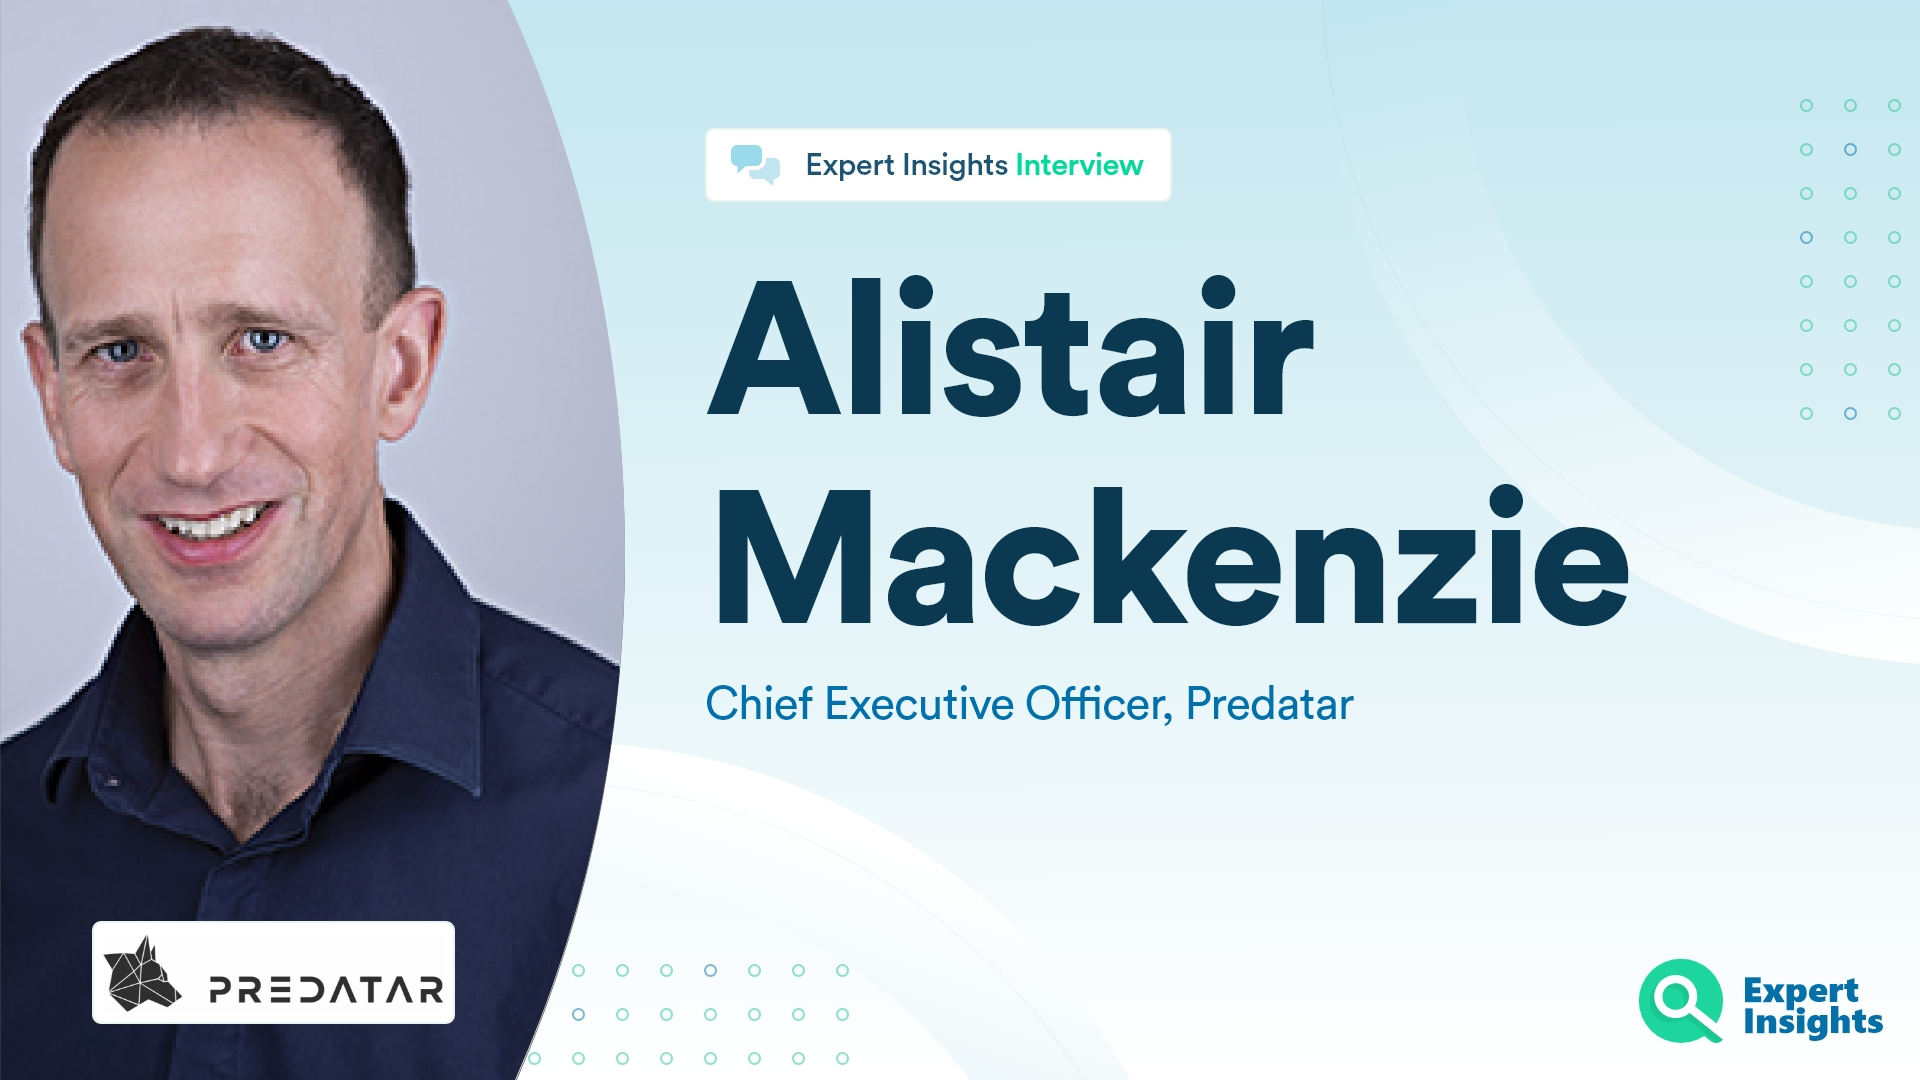 Expert Insights Interview With Alistair Mackenzie Of Predatar